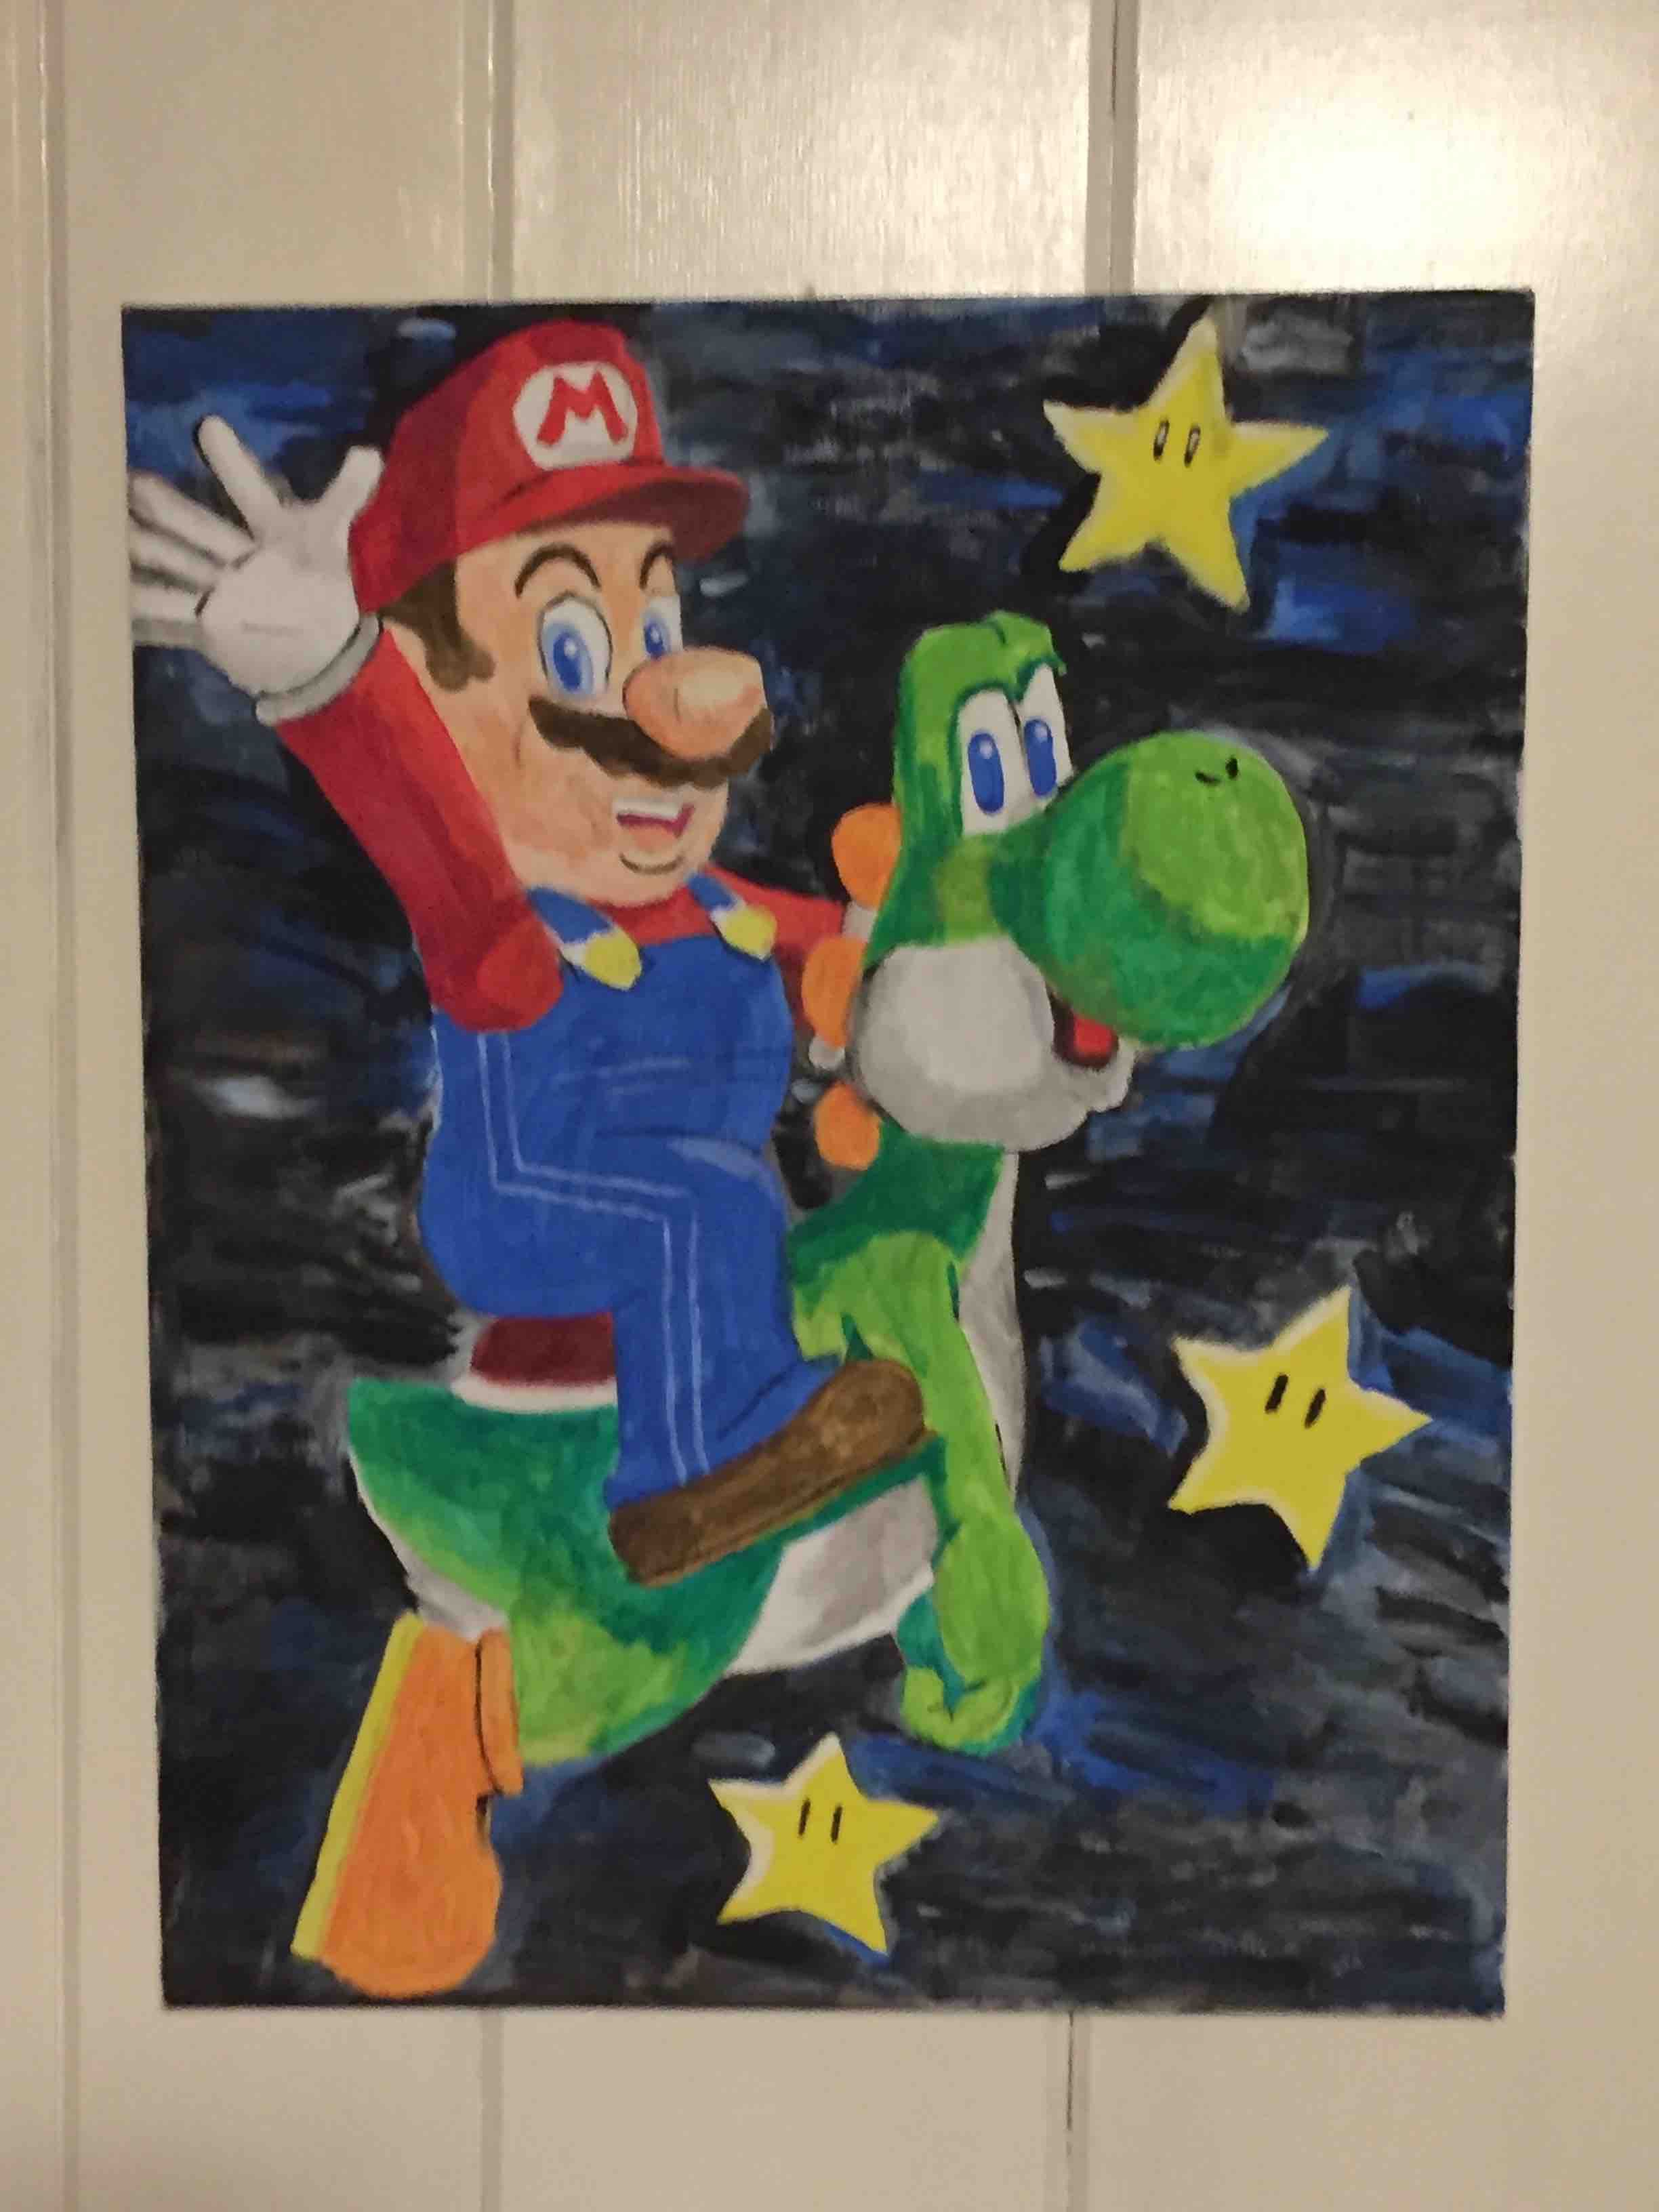 Mario and Yoshi in Space